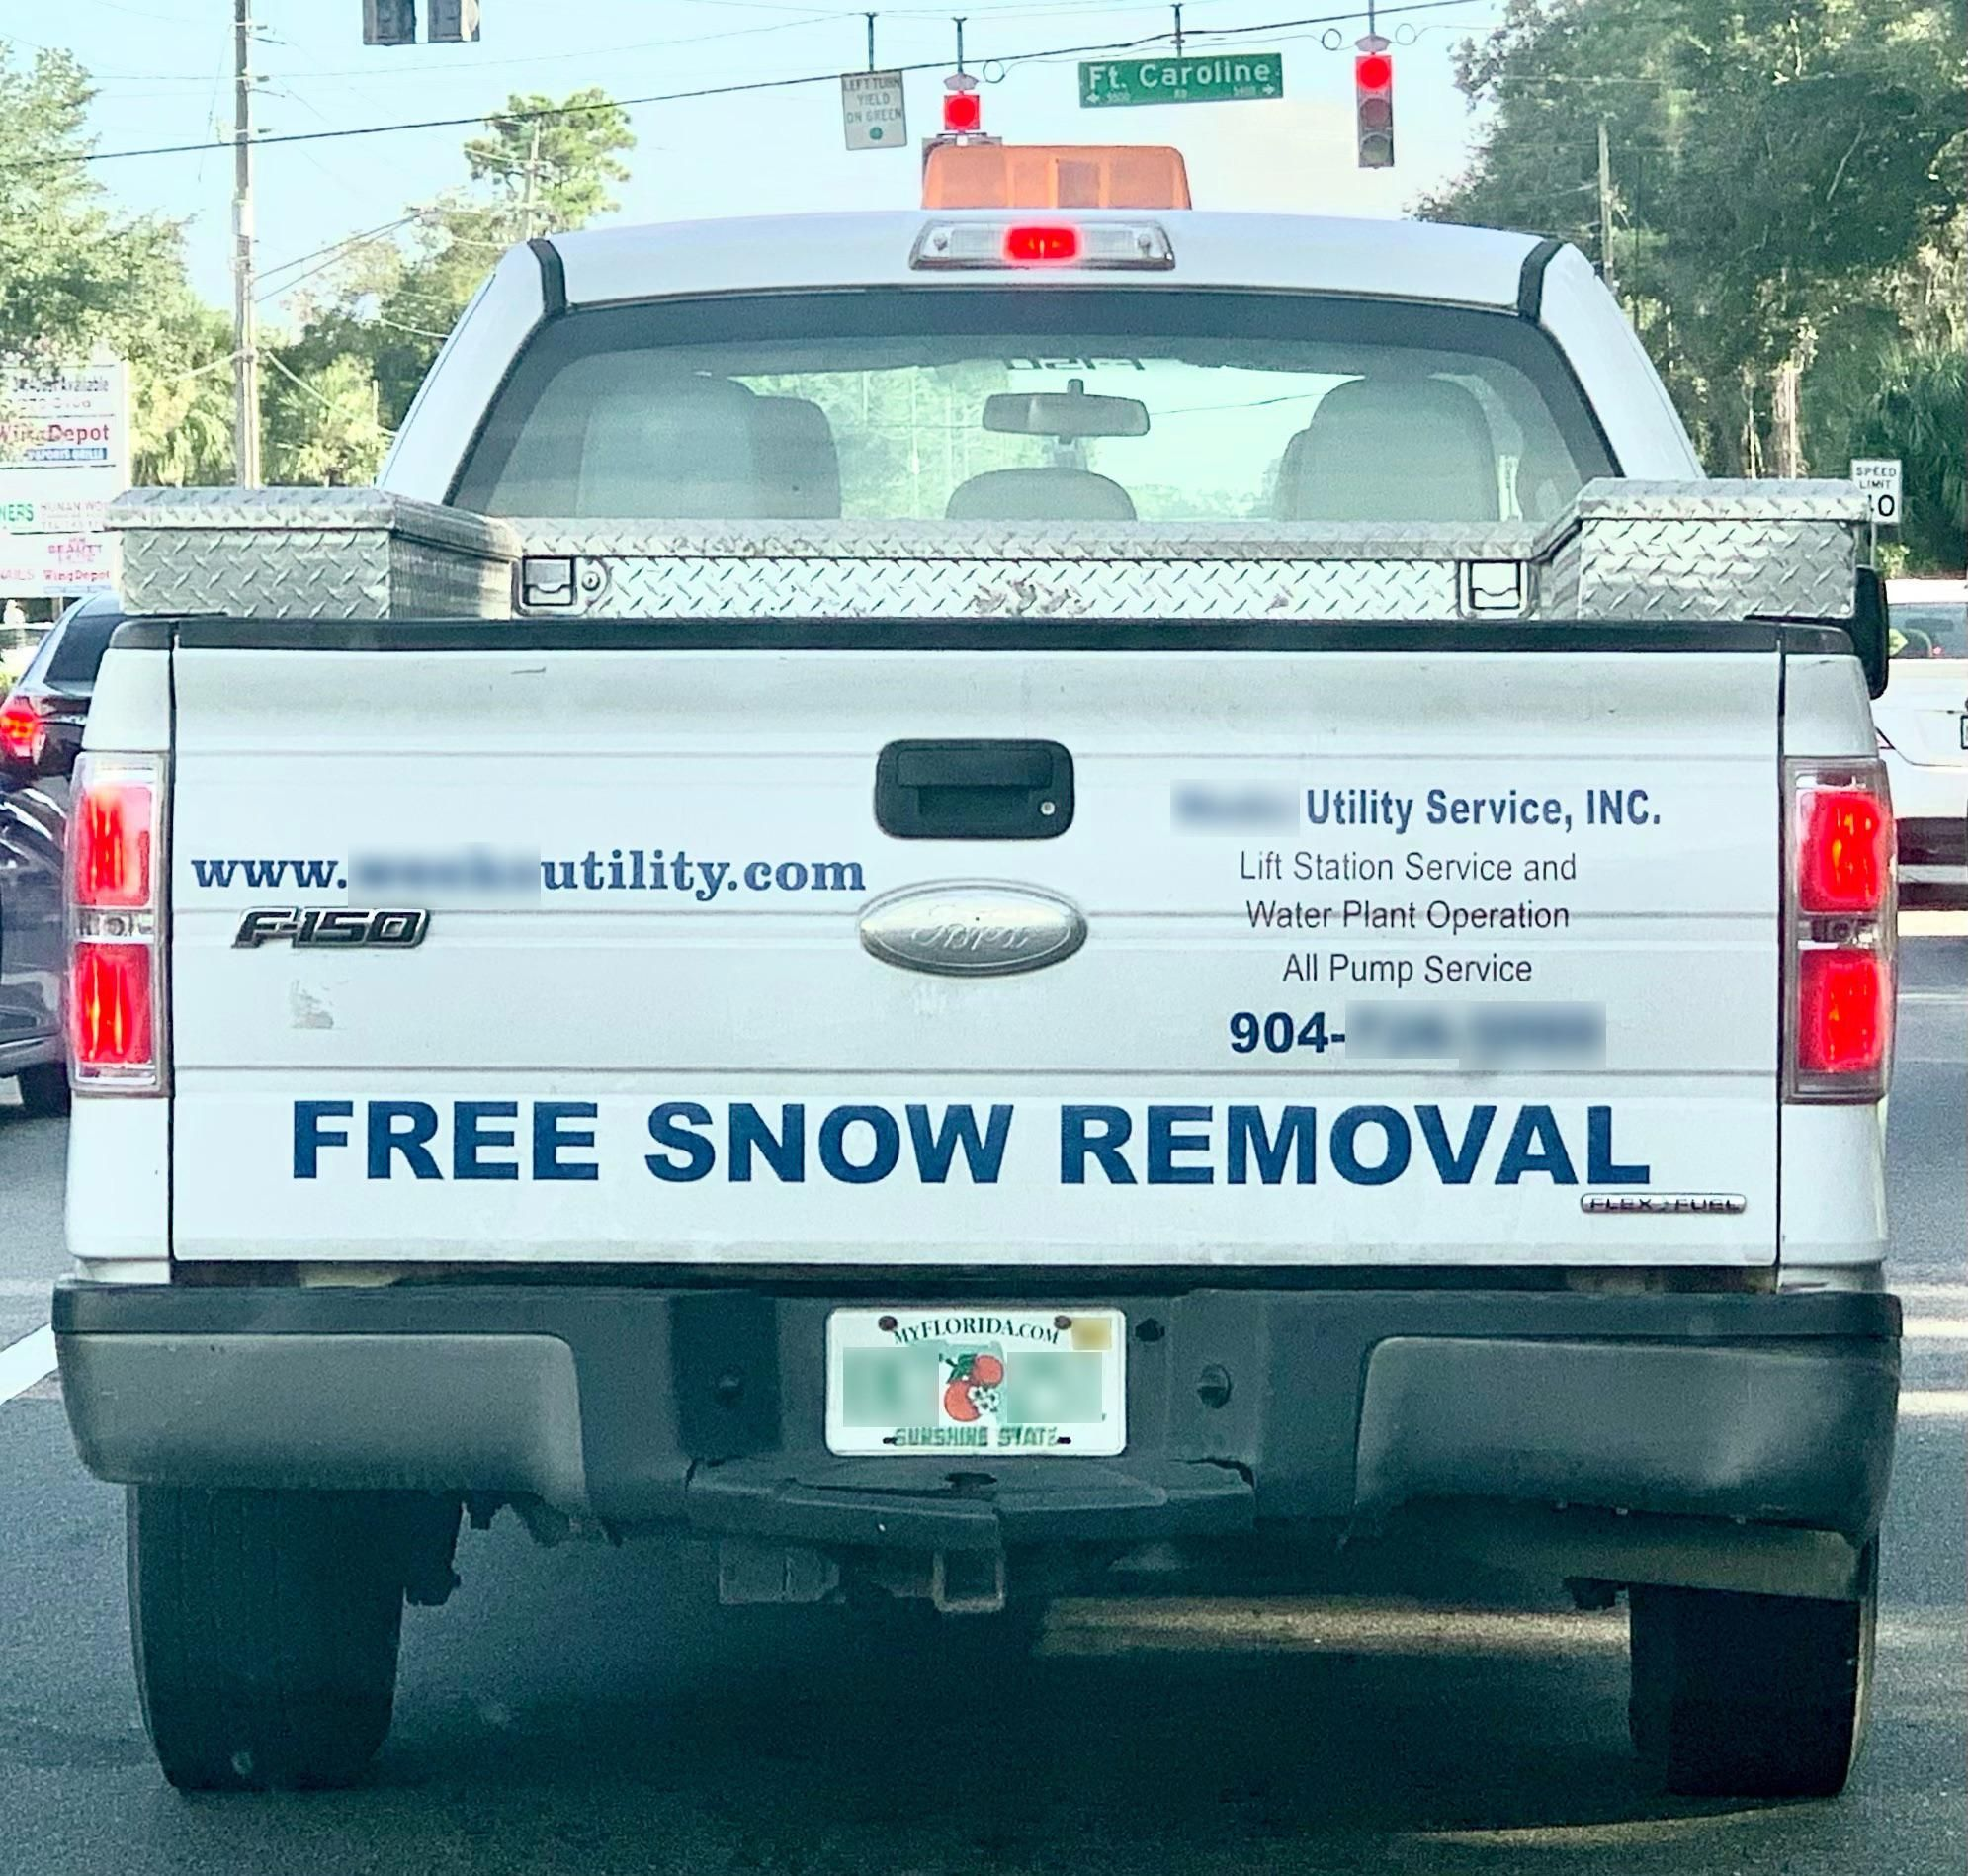 So happy for companies that offer free snow removal...in Florida